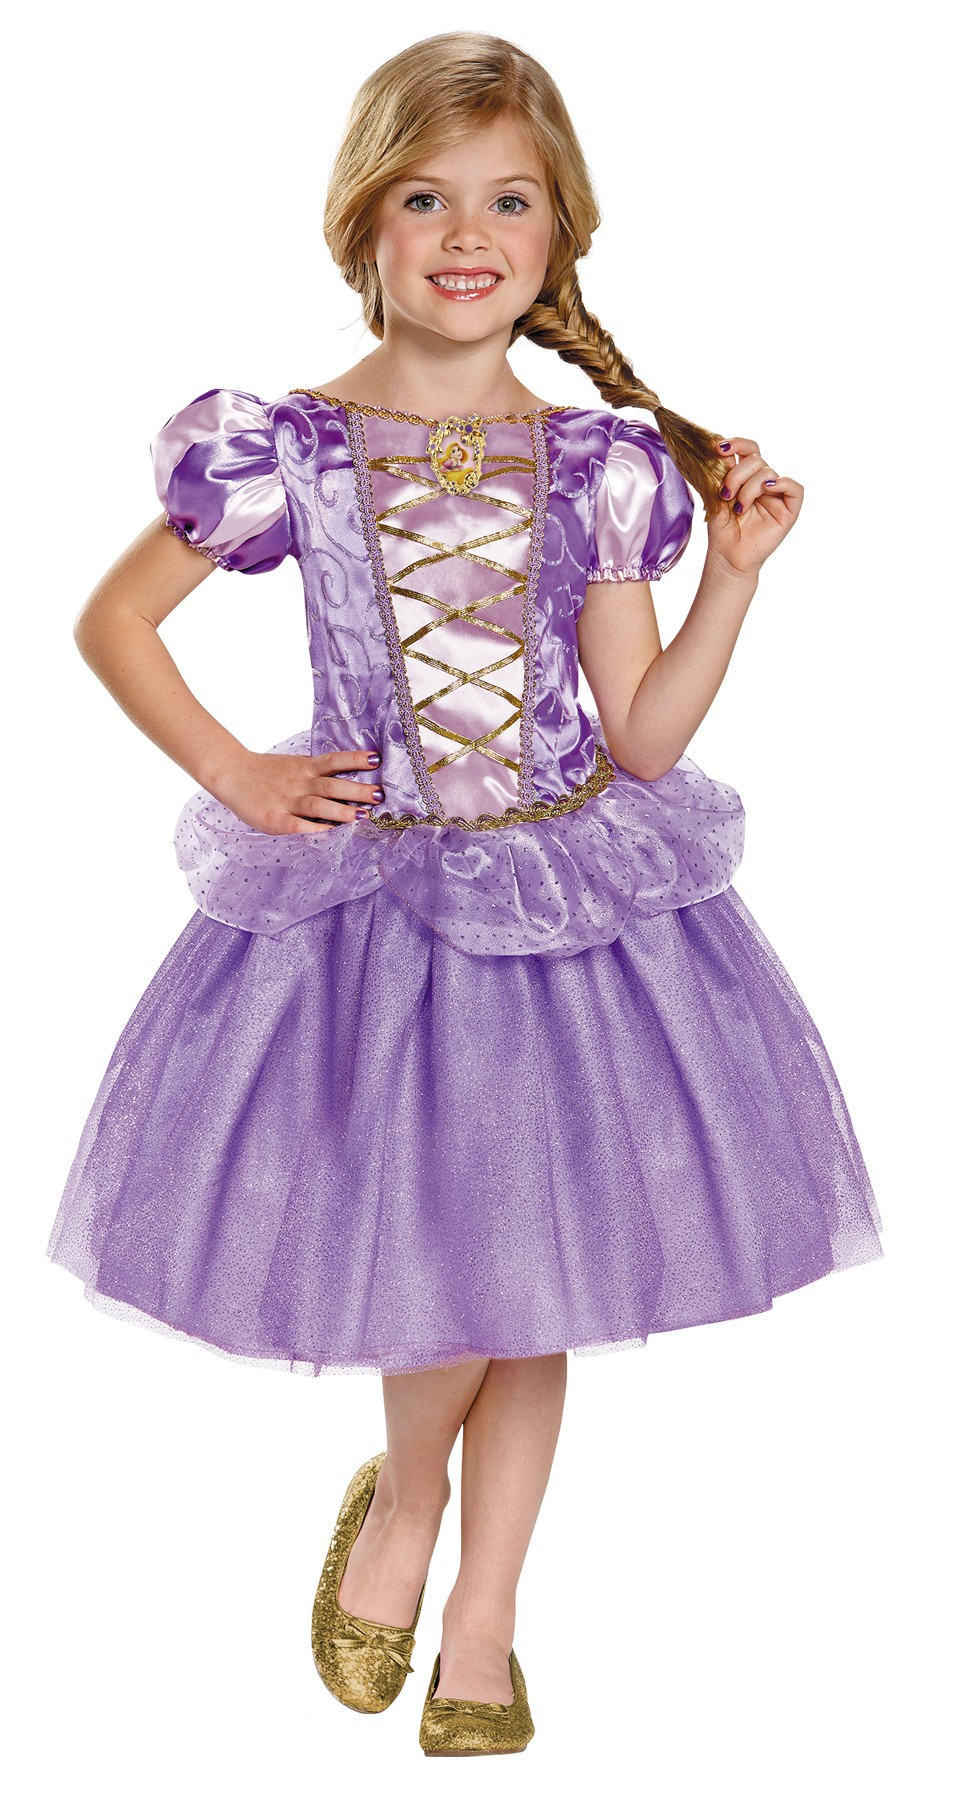 ed666c372 Disney Tangled Rapunzel Classic Toddler / Child Costume | Costumes ...